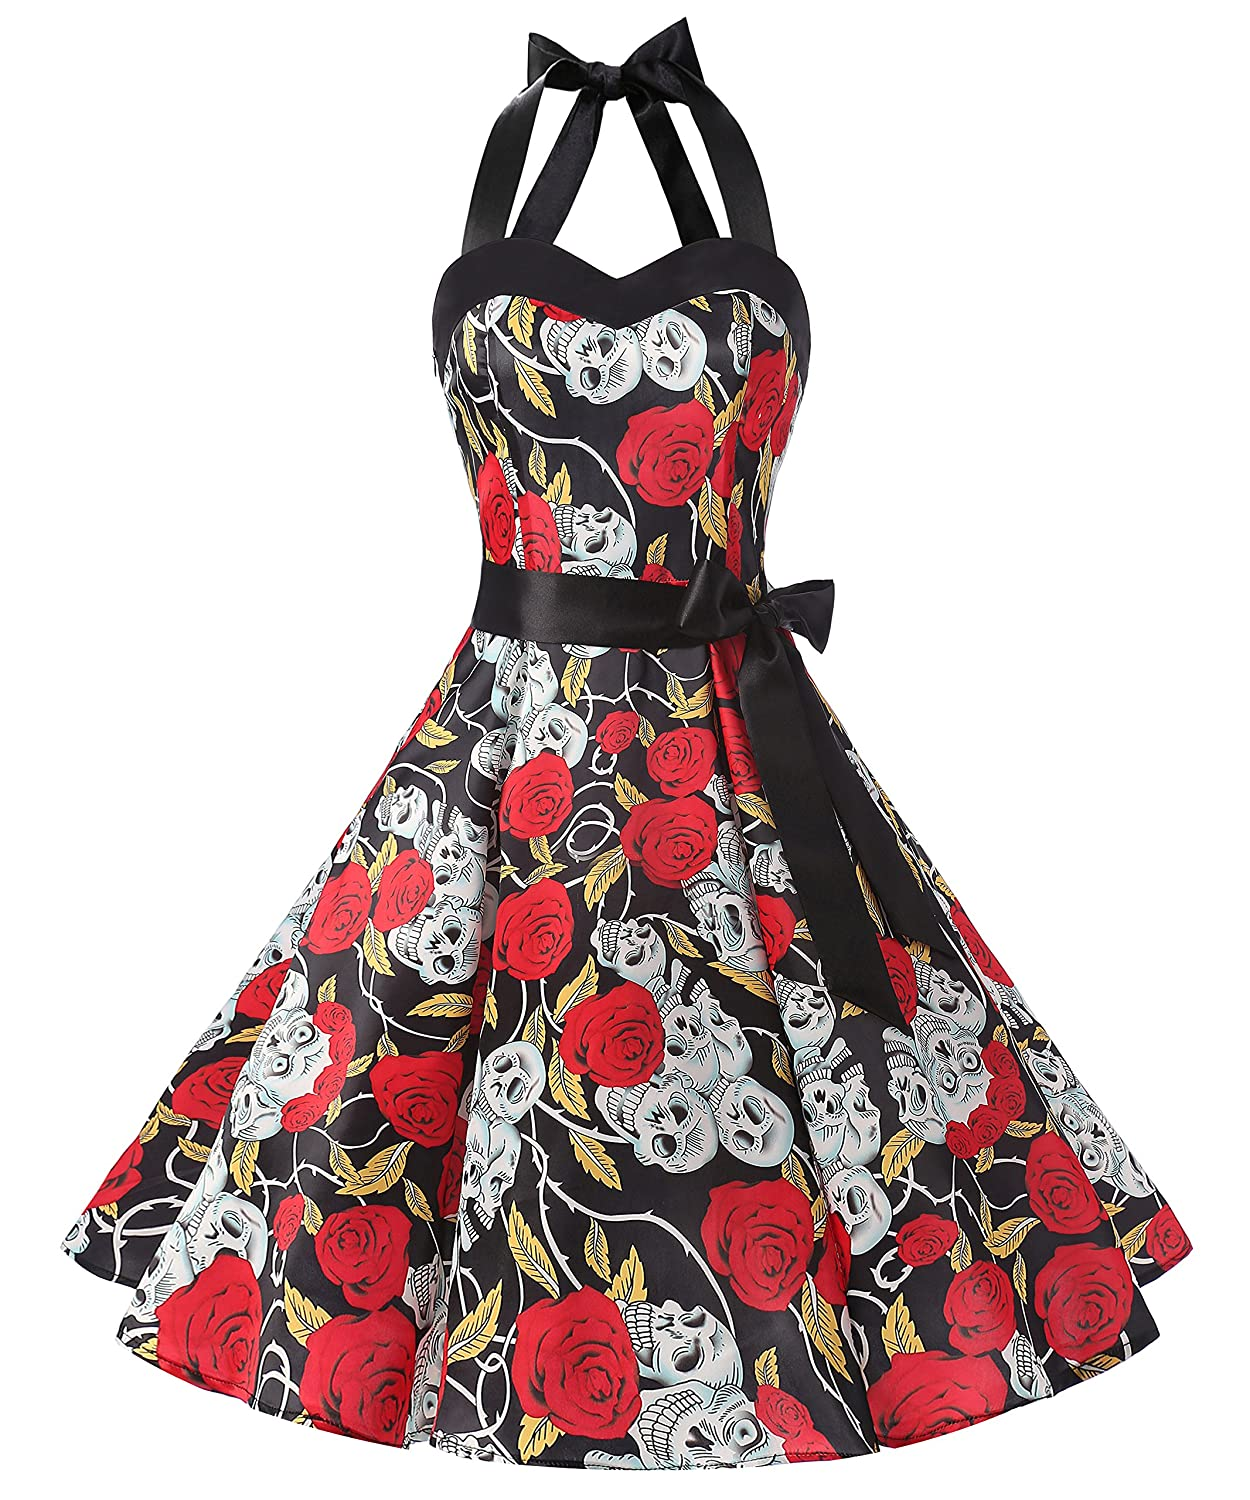 TALLA XXL. Dresstells® Halter 50s Rockabilly Polka Dots Audrey Dress Retro Cocktail Dress Black Skull XXL